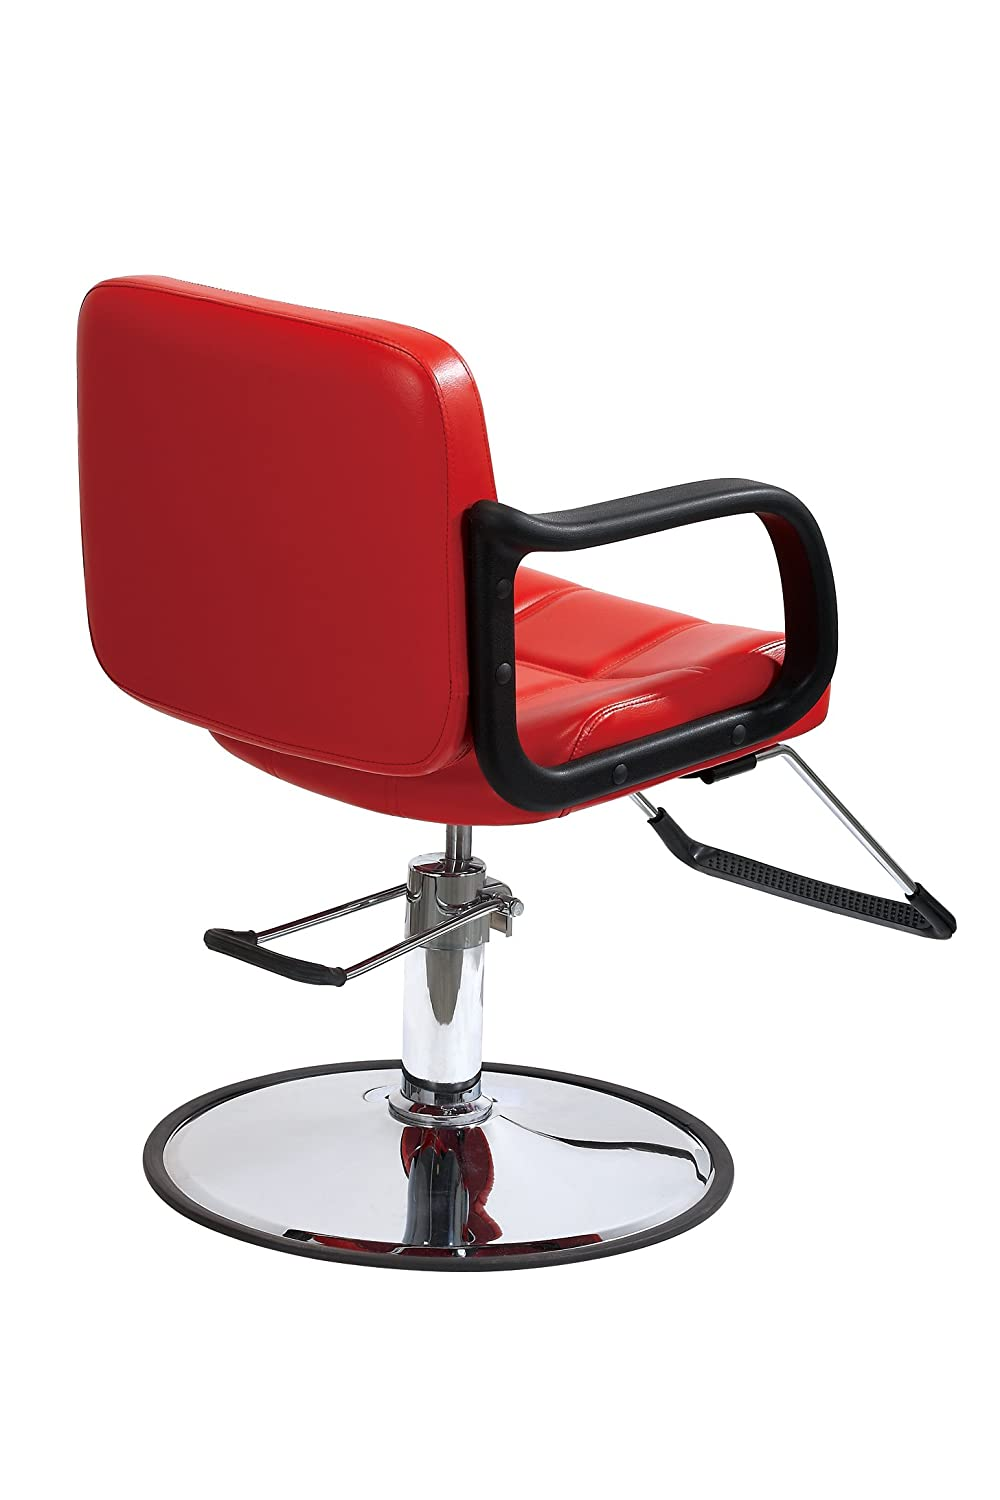 Amazon.com: Hydraulic Barber Chair Styling Salon Beauty Equipment J: Beauty